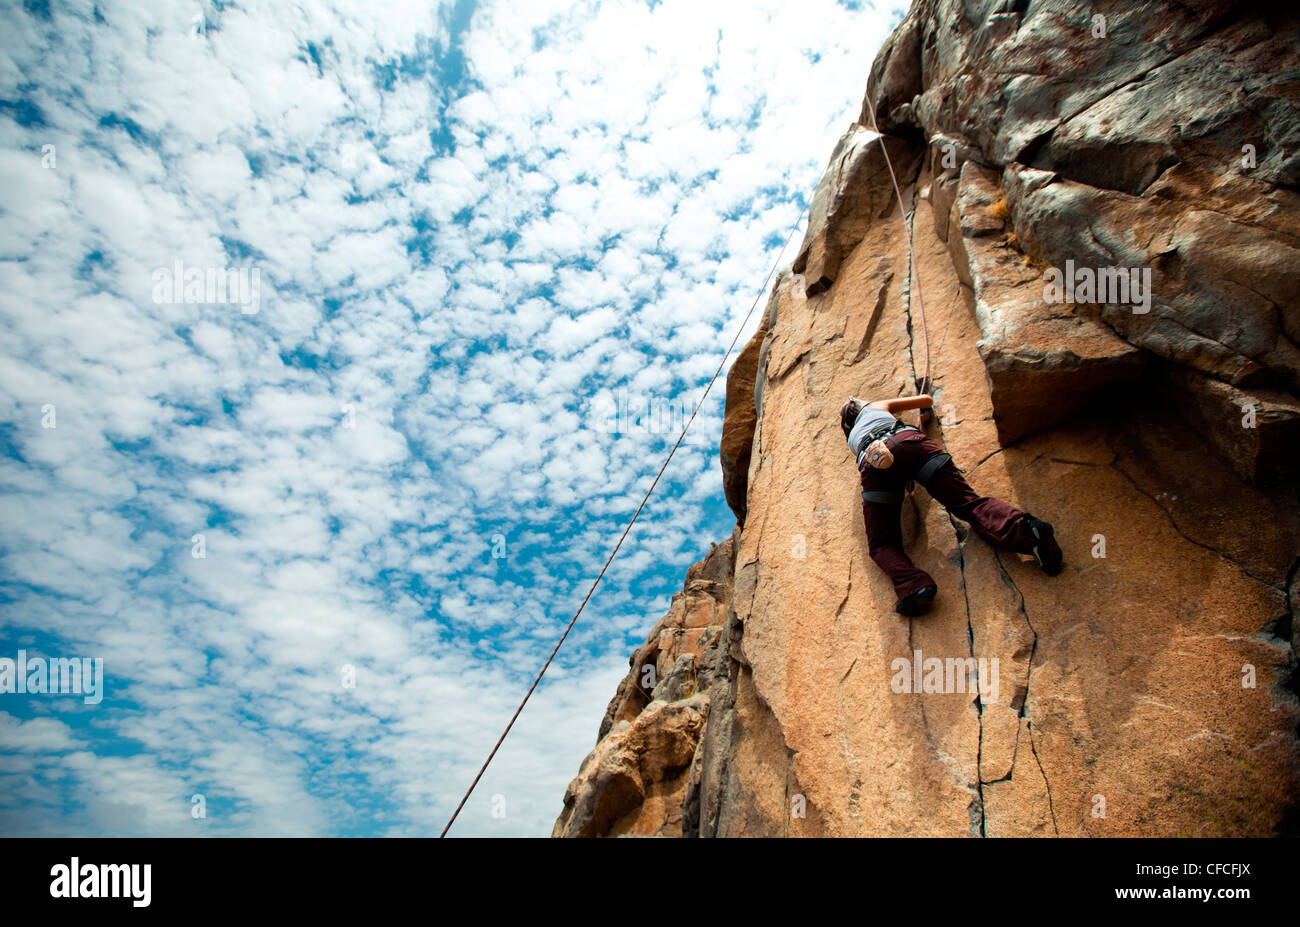 Looking up at a woman climber a crack seam in a granite cliff face. Stock Photo